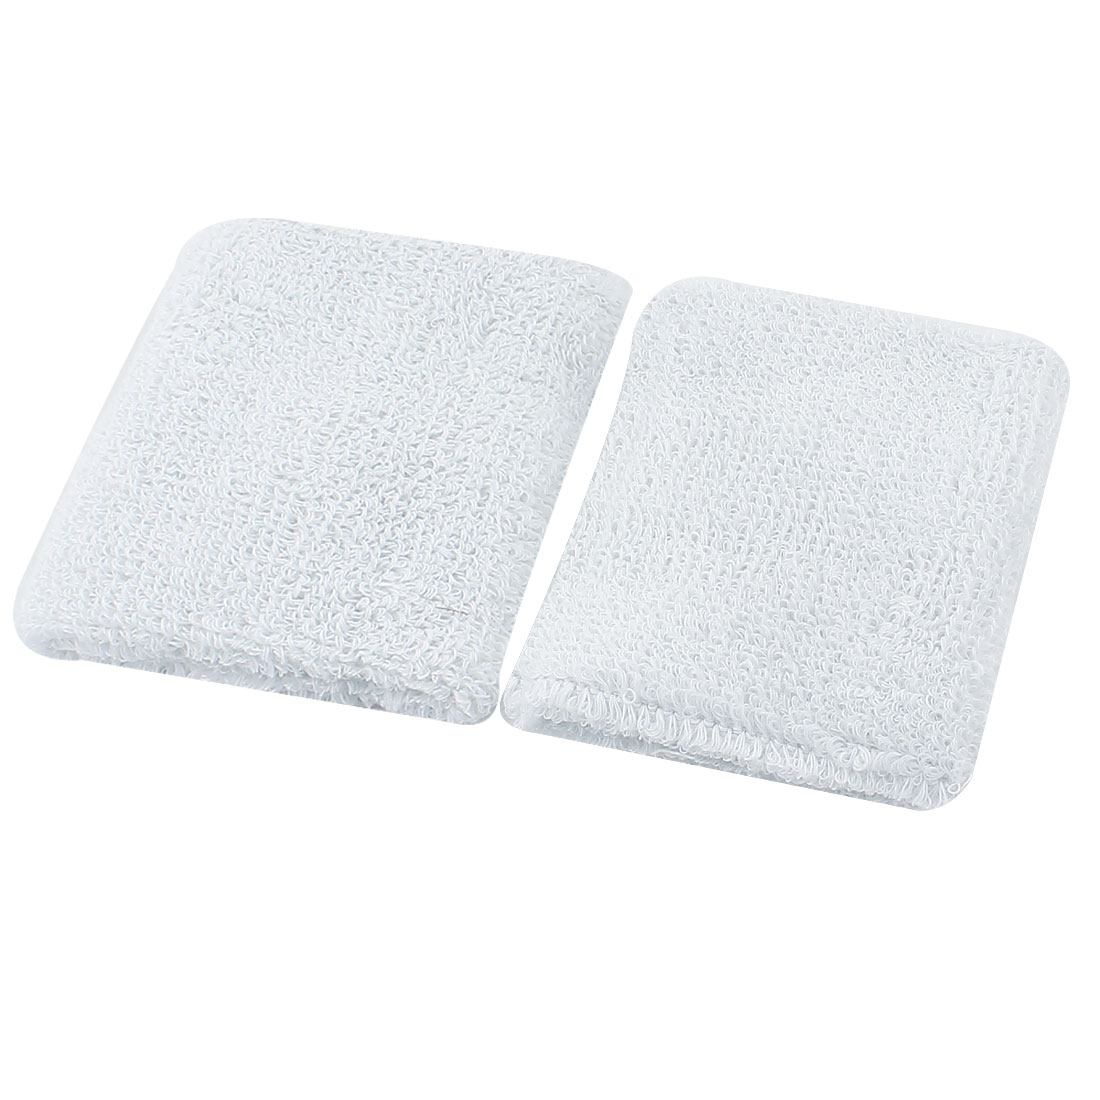 Pair Sports Protection White Knitted Elastic Wrist Support Sleeve